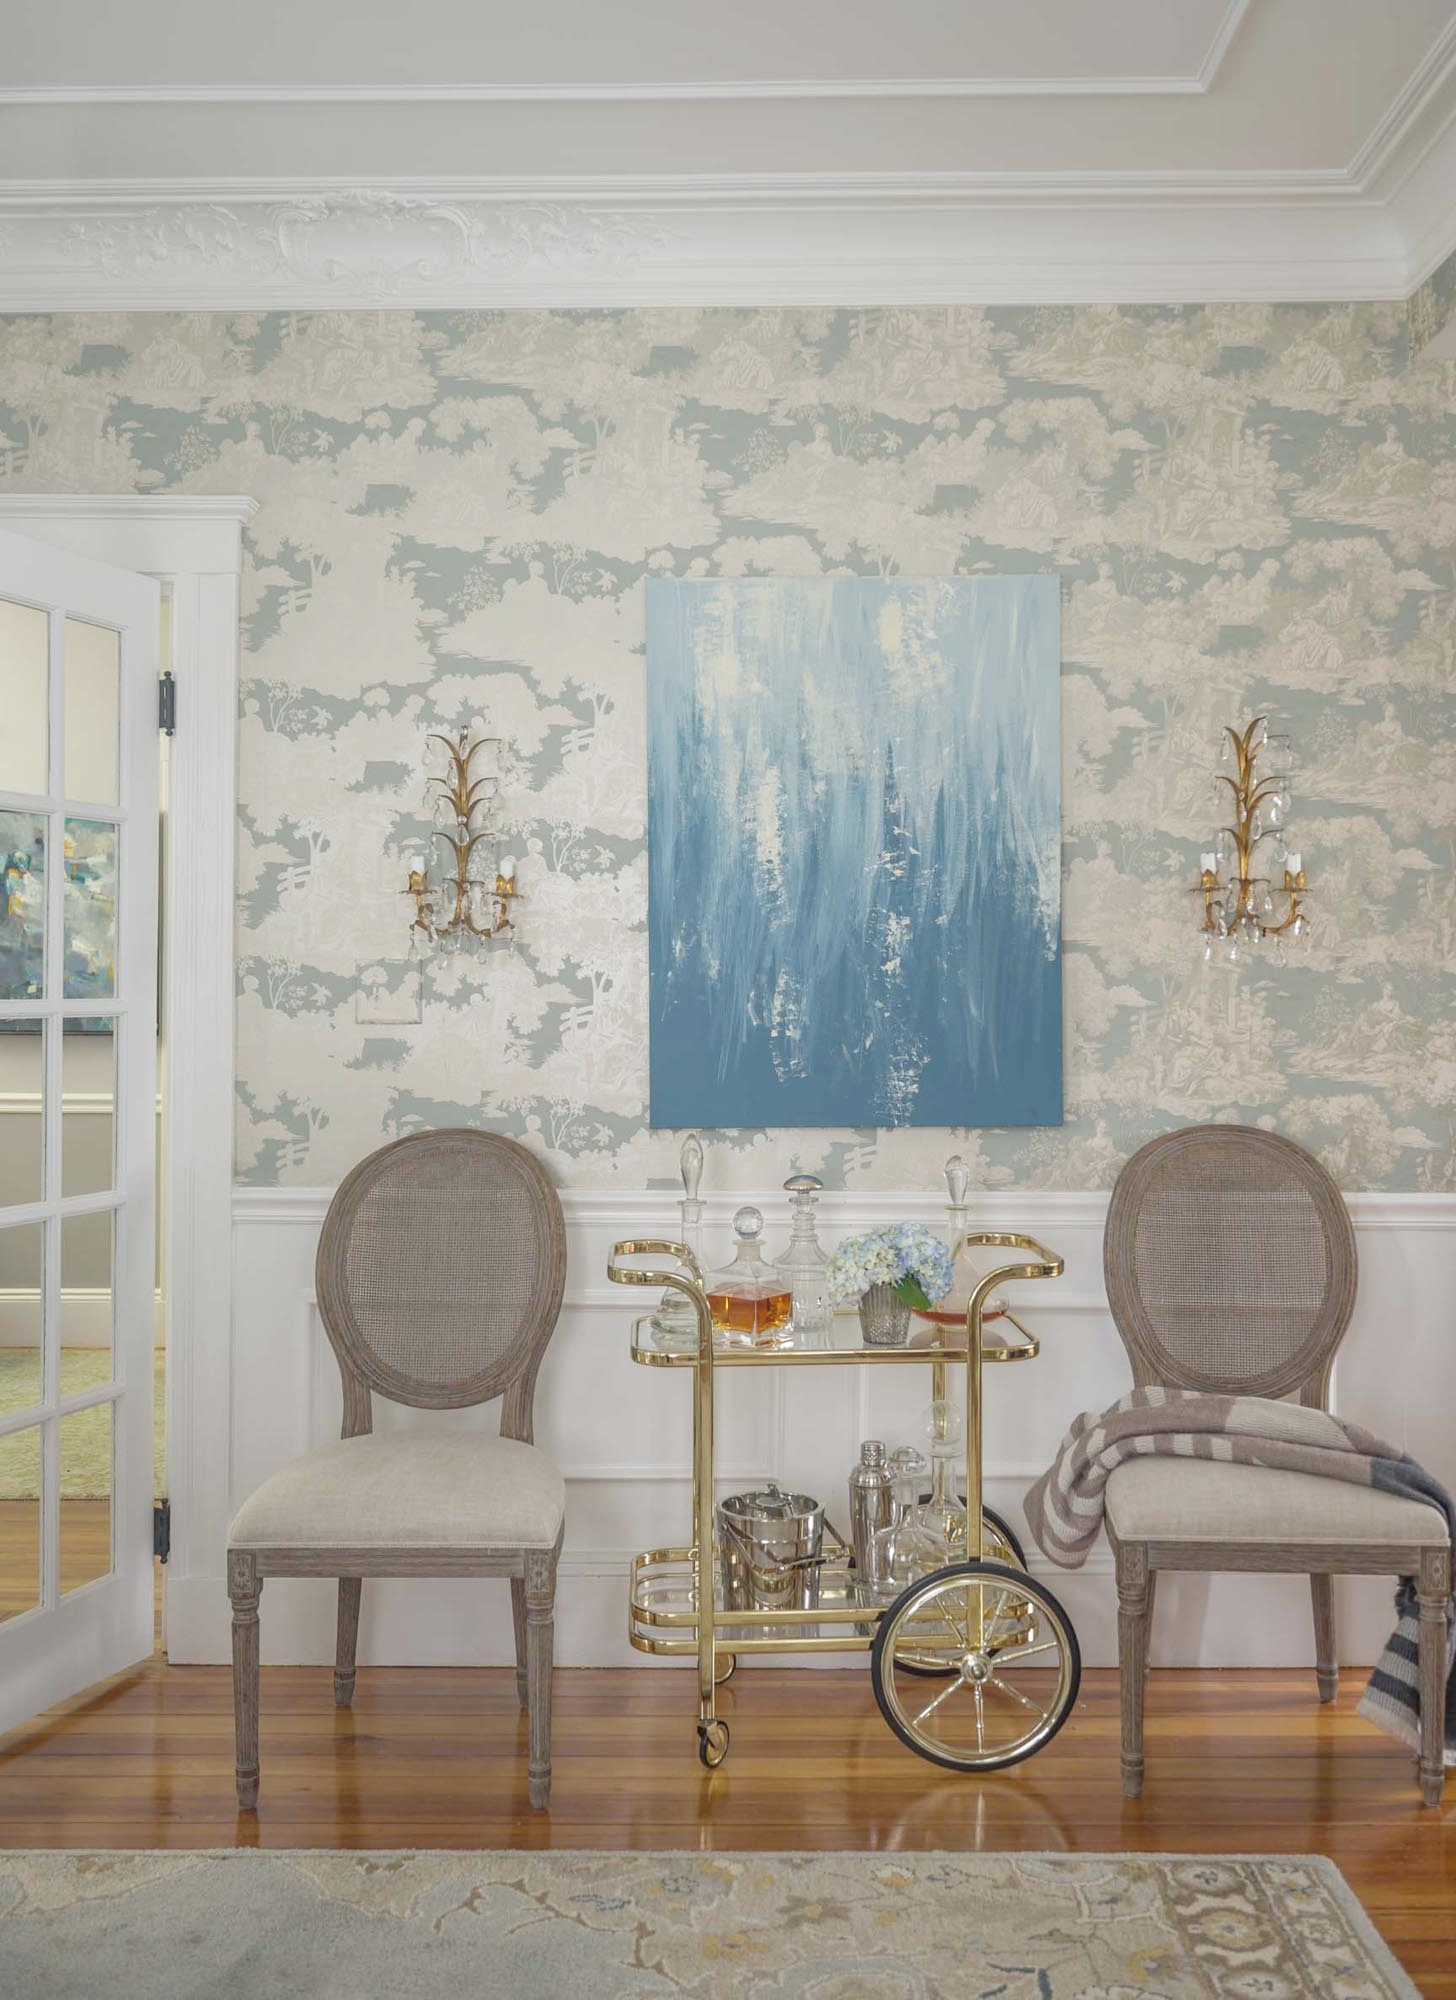 Dining Room Mirror Wallpaper Bar cart-Interior with two single chairs